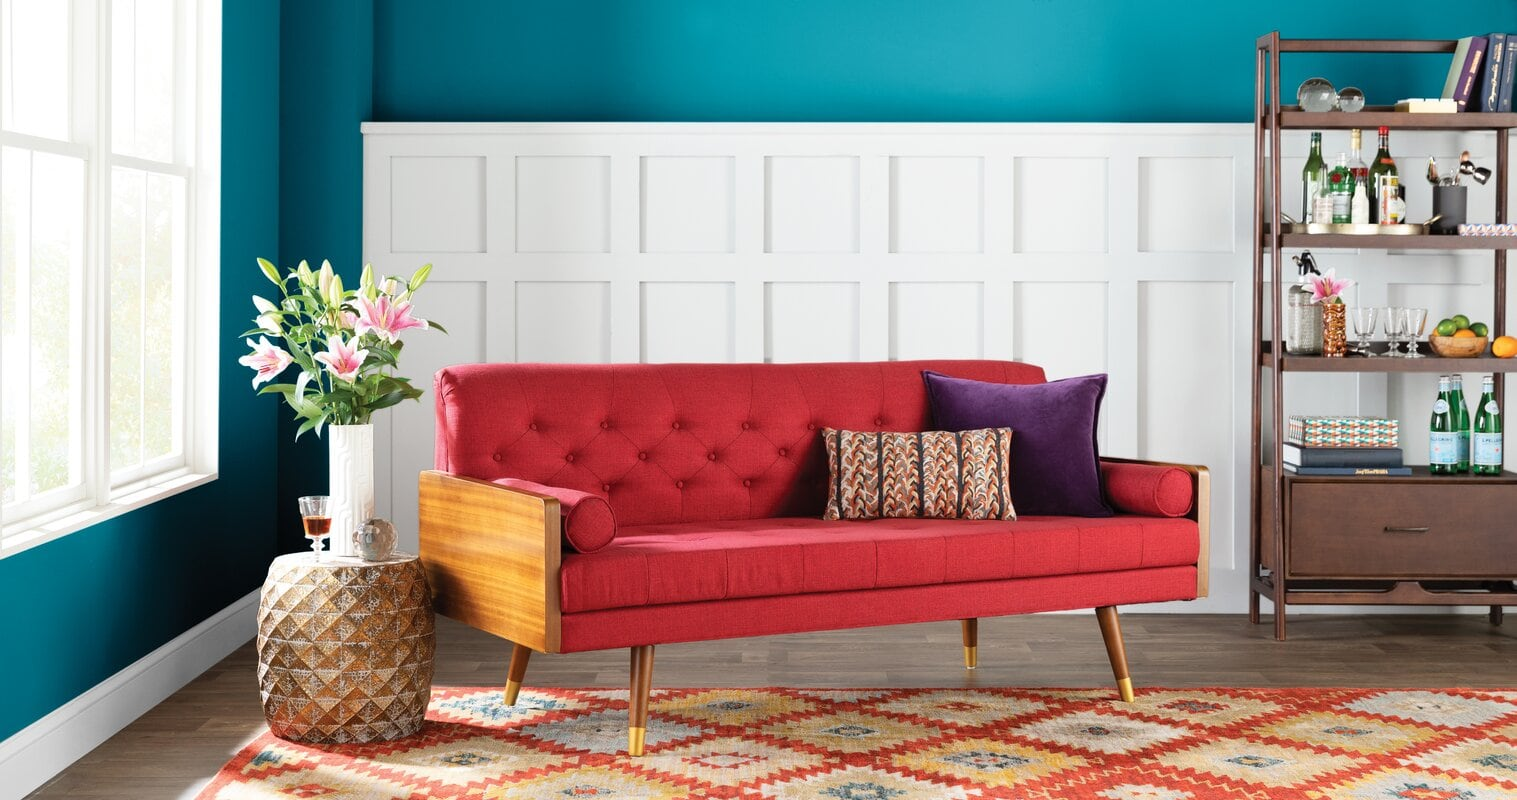 What Color Rug Goes a With Red Couch? - 10 Ideas